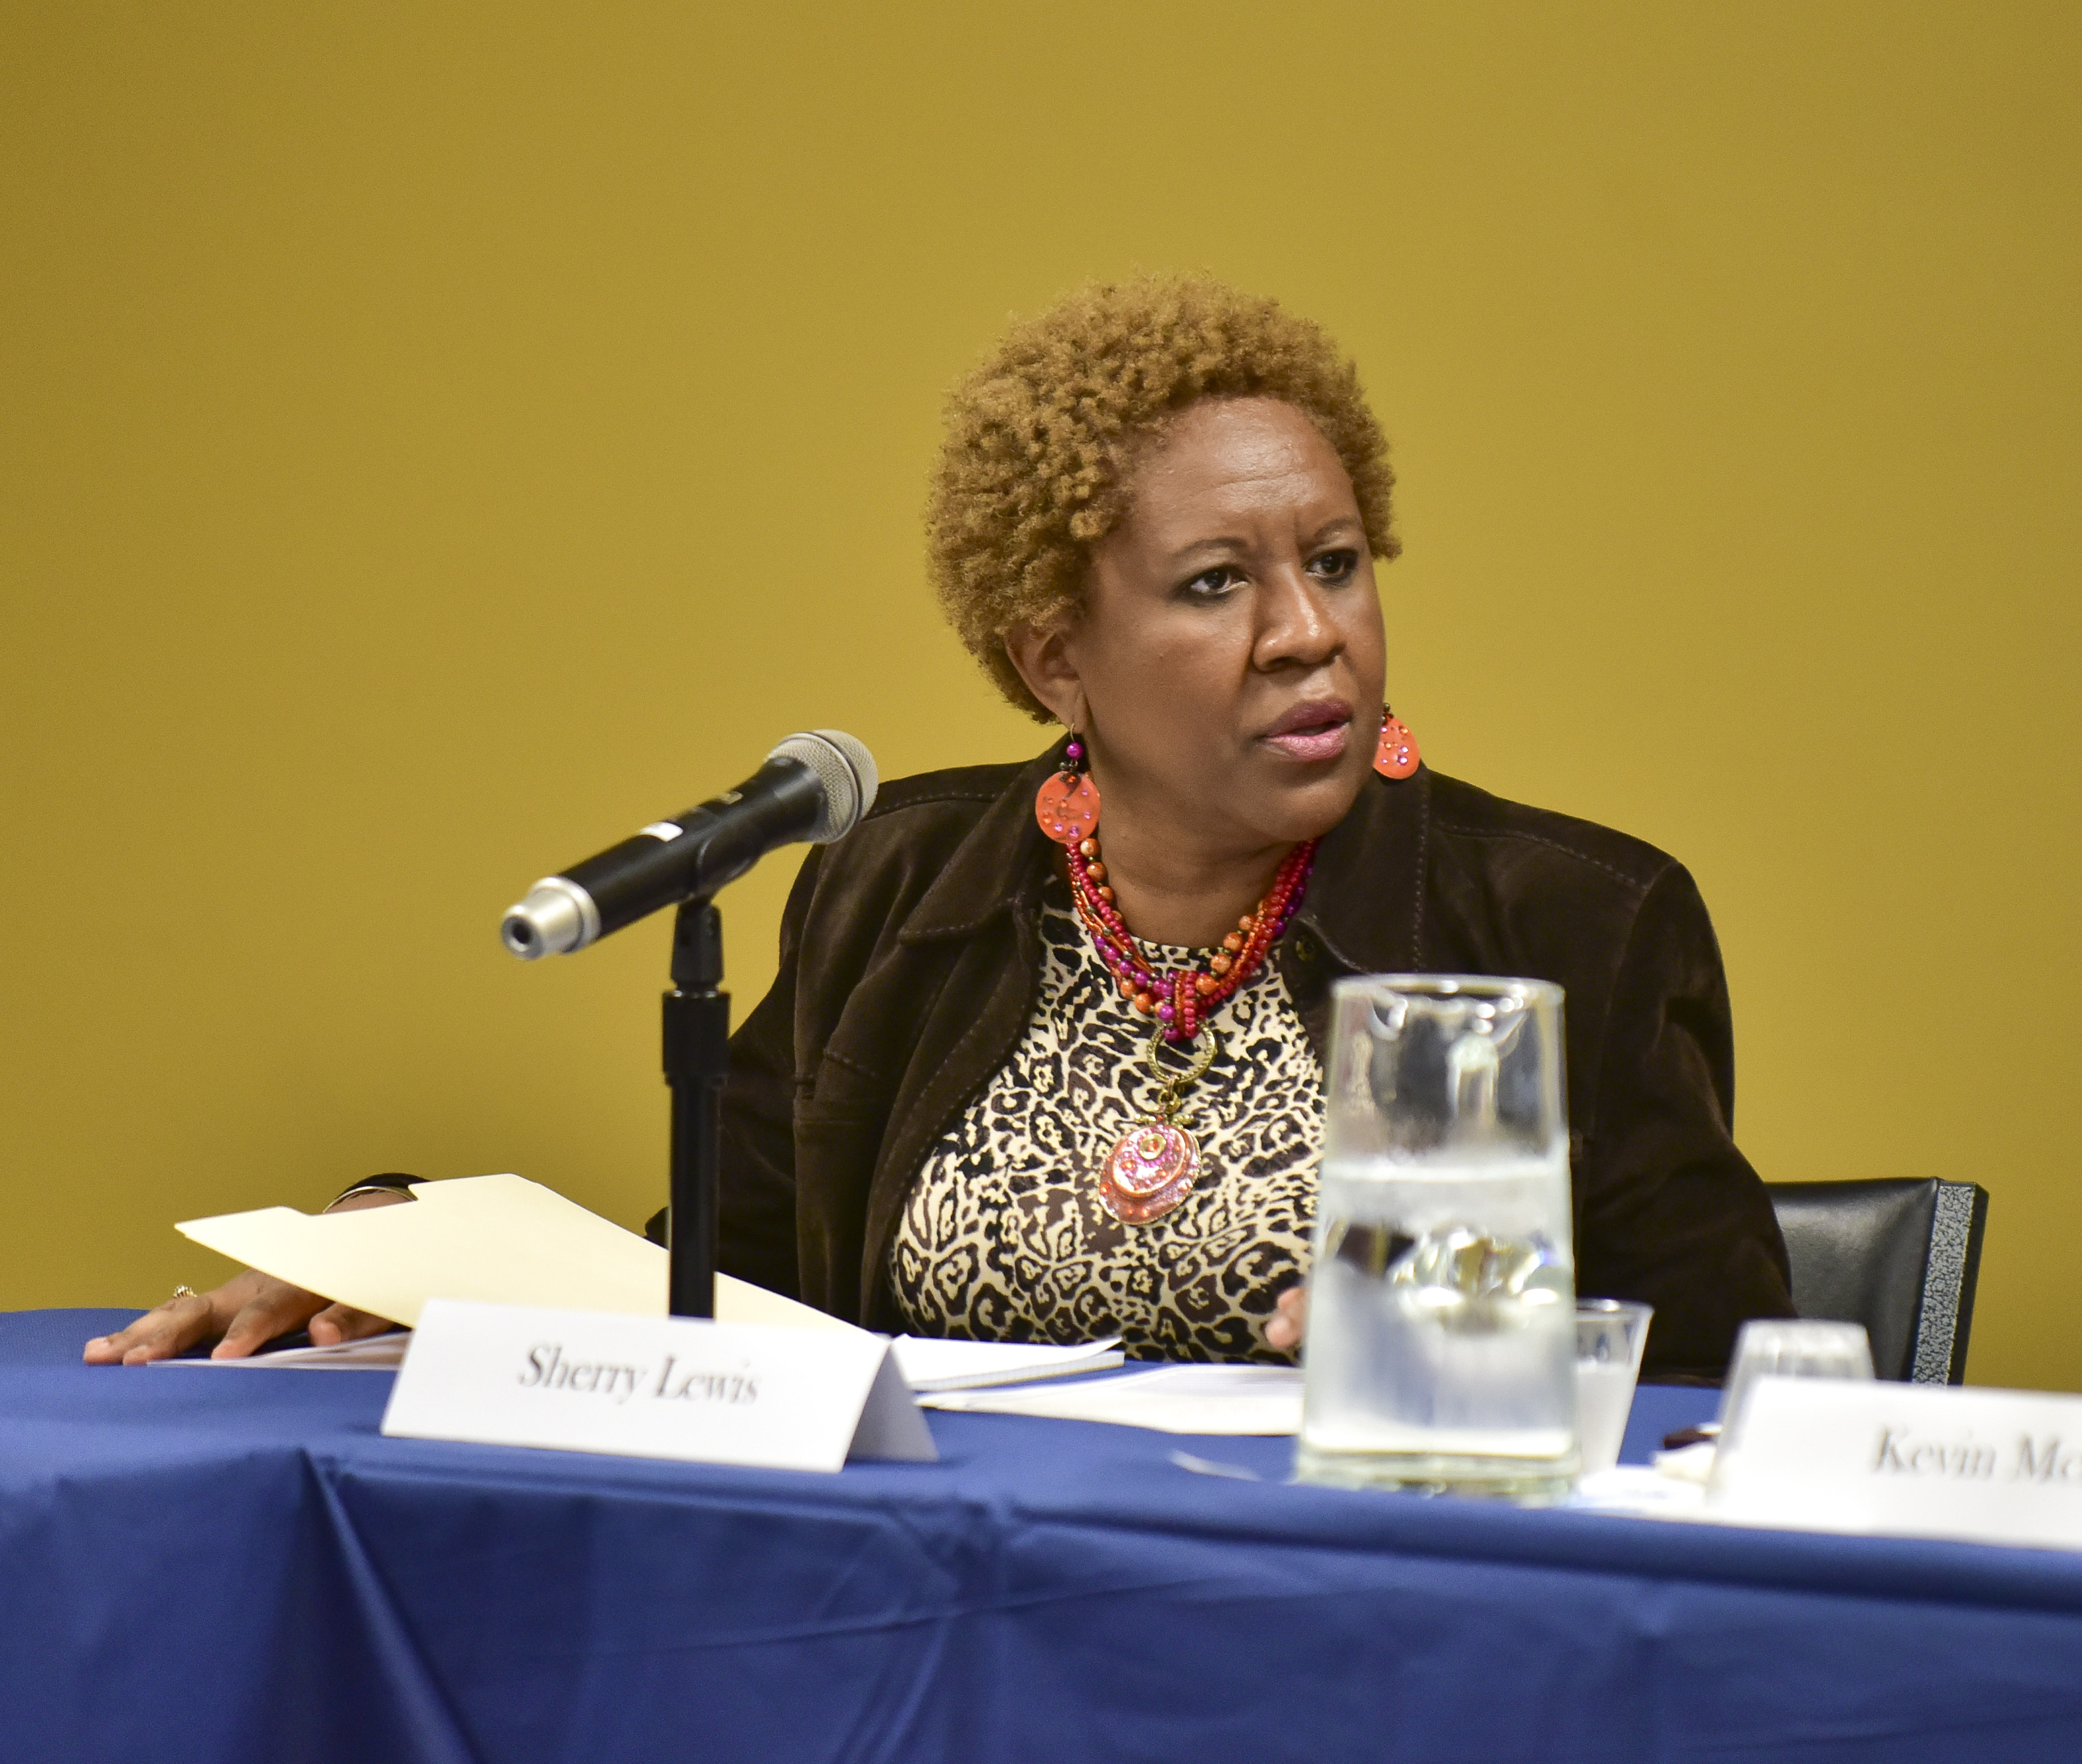 Sherry Lewis, Birmingham Water Works Board Chair, indicted ...